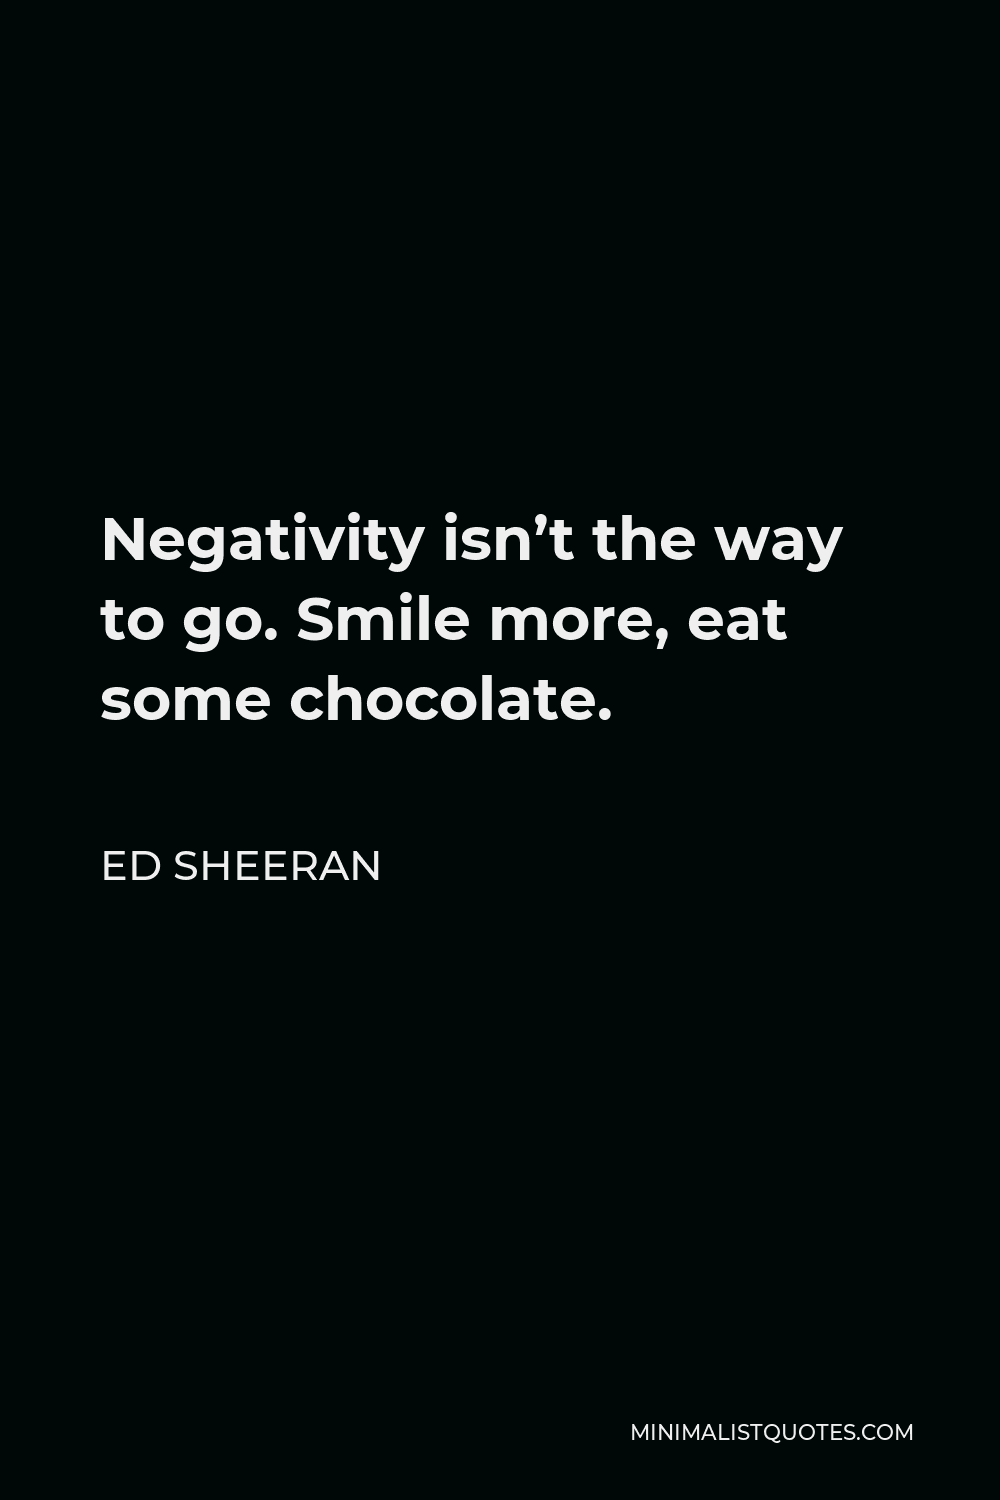 Ed Sheeran Quote - Negativity isn't the way to go. Smile more, eat some chocolate.